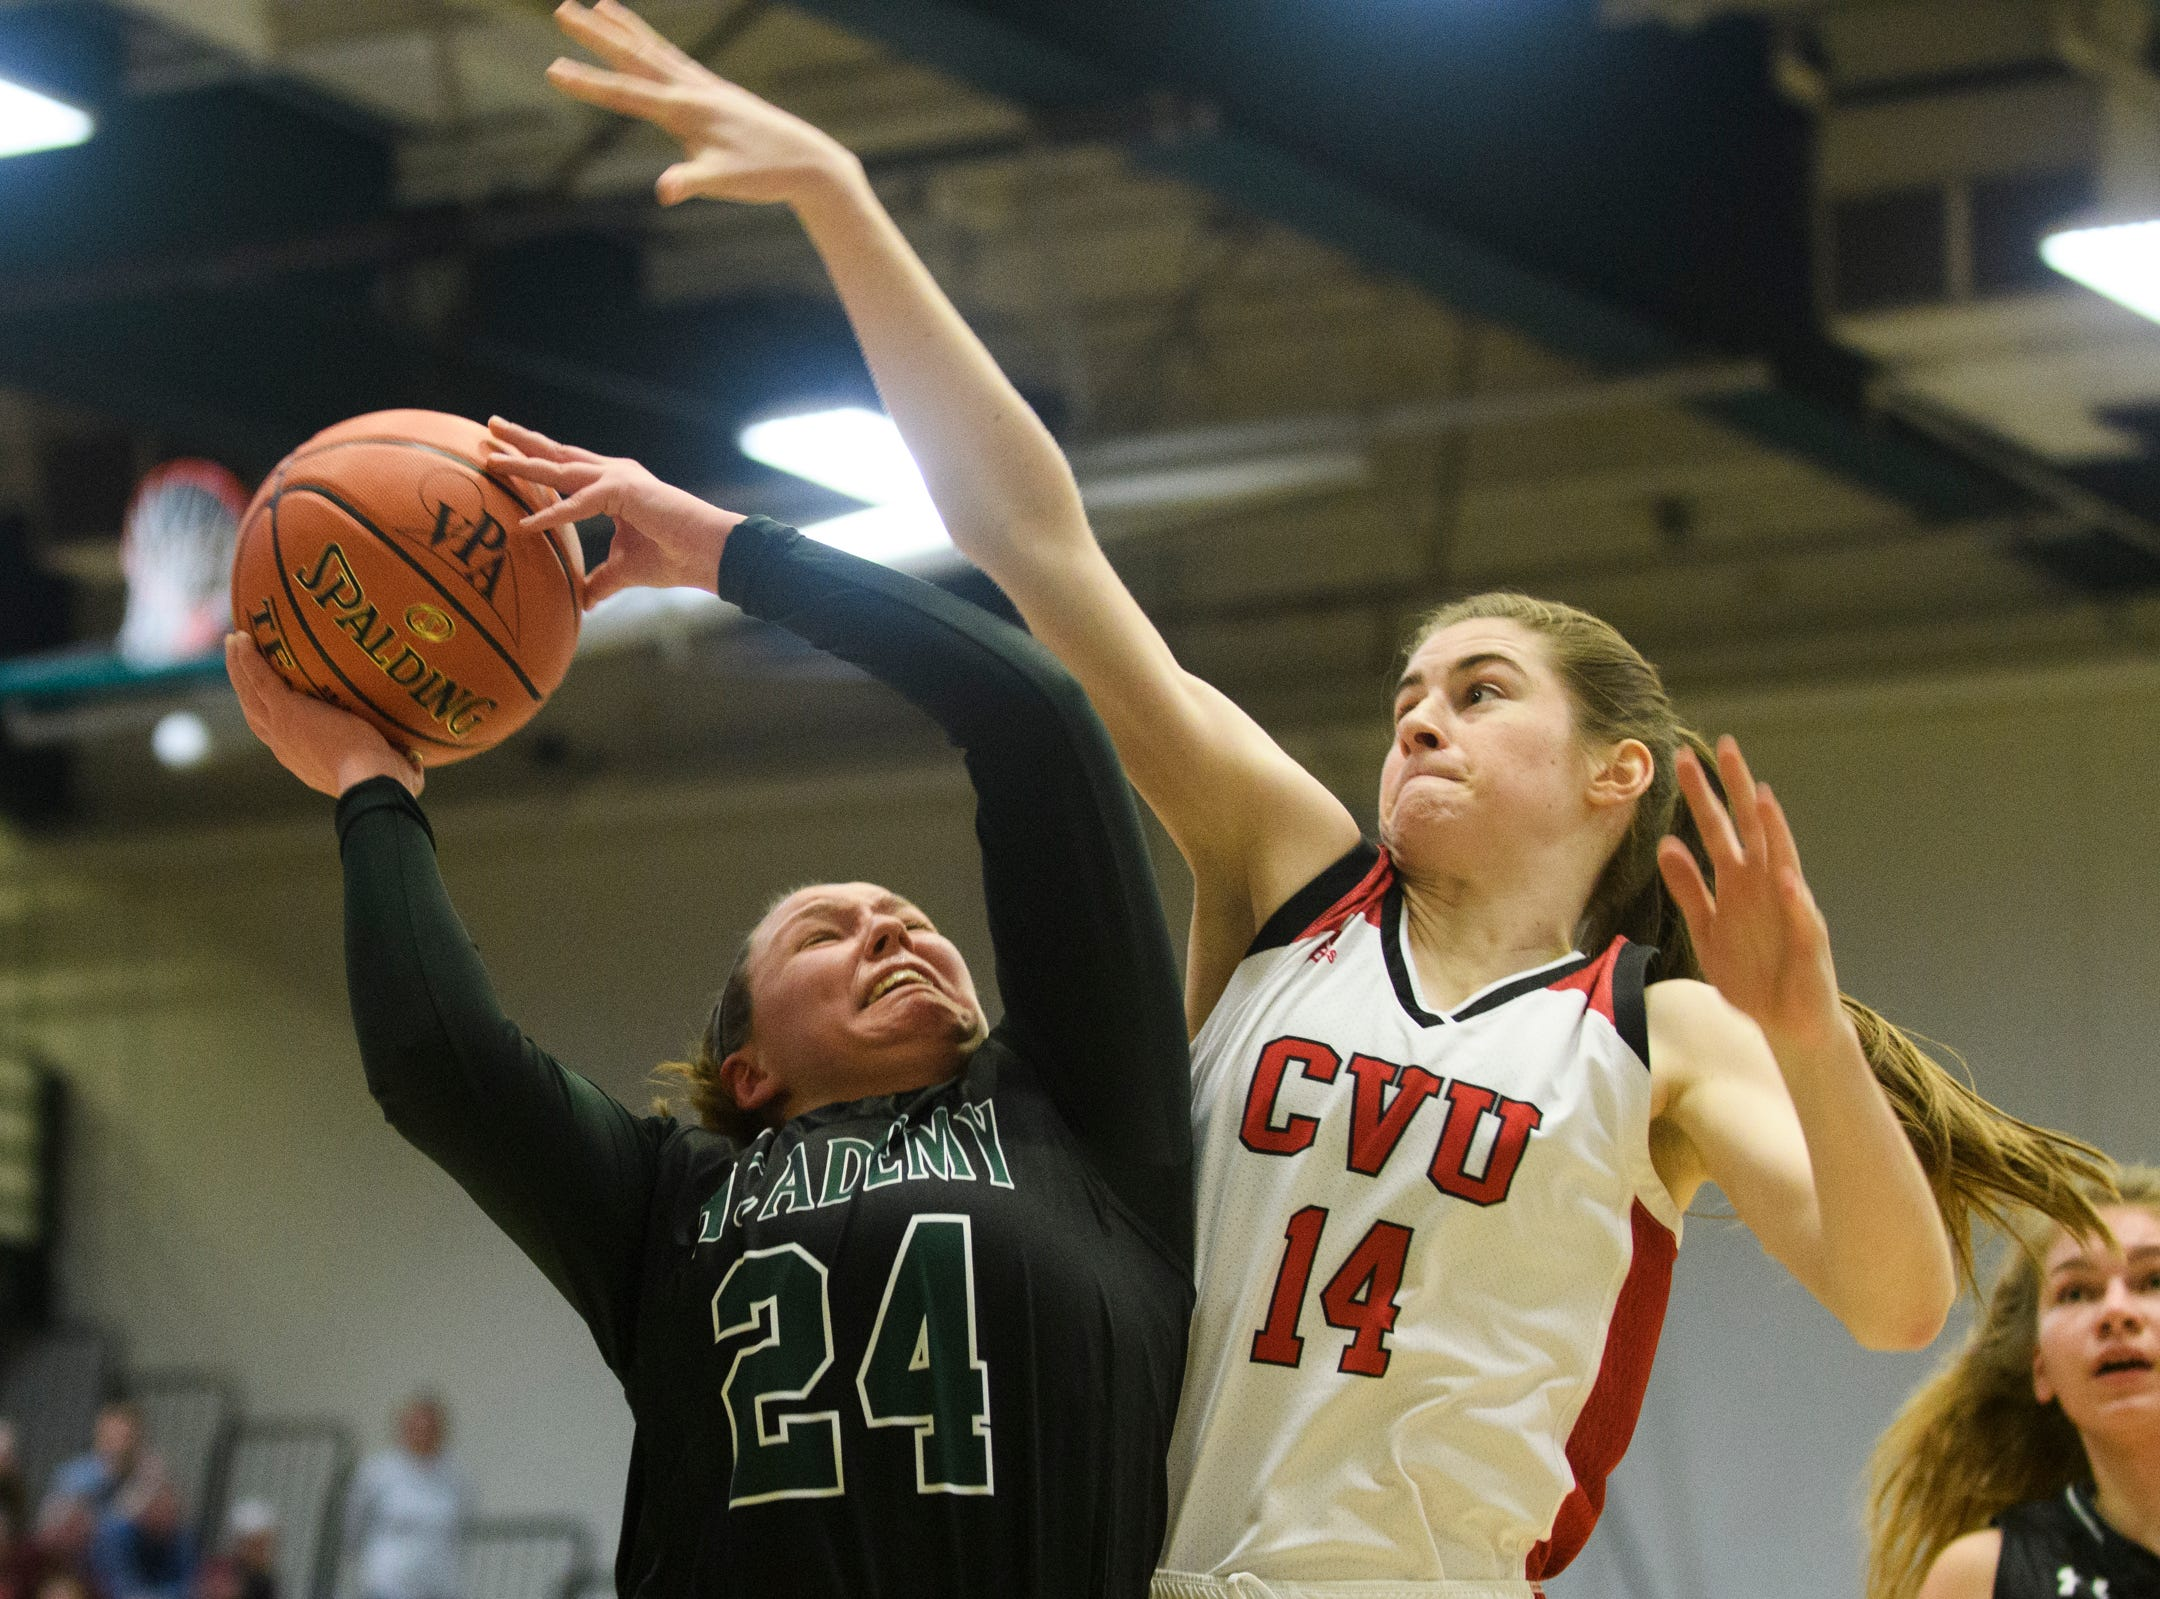 St. Johnsbury's Josie Choiniere (24) leaps for a lay up over CVU's Julia Blanck (14) during the division I girls basketball championship basketball game between the St. Johnsbury Hilltoppers and the Champlain Valley Union Redhawks at Patrick Gym on Sunday afternoon March 10, 2019 in Burlington, Vermont.